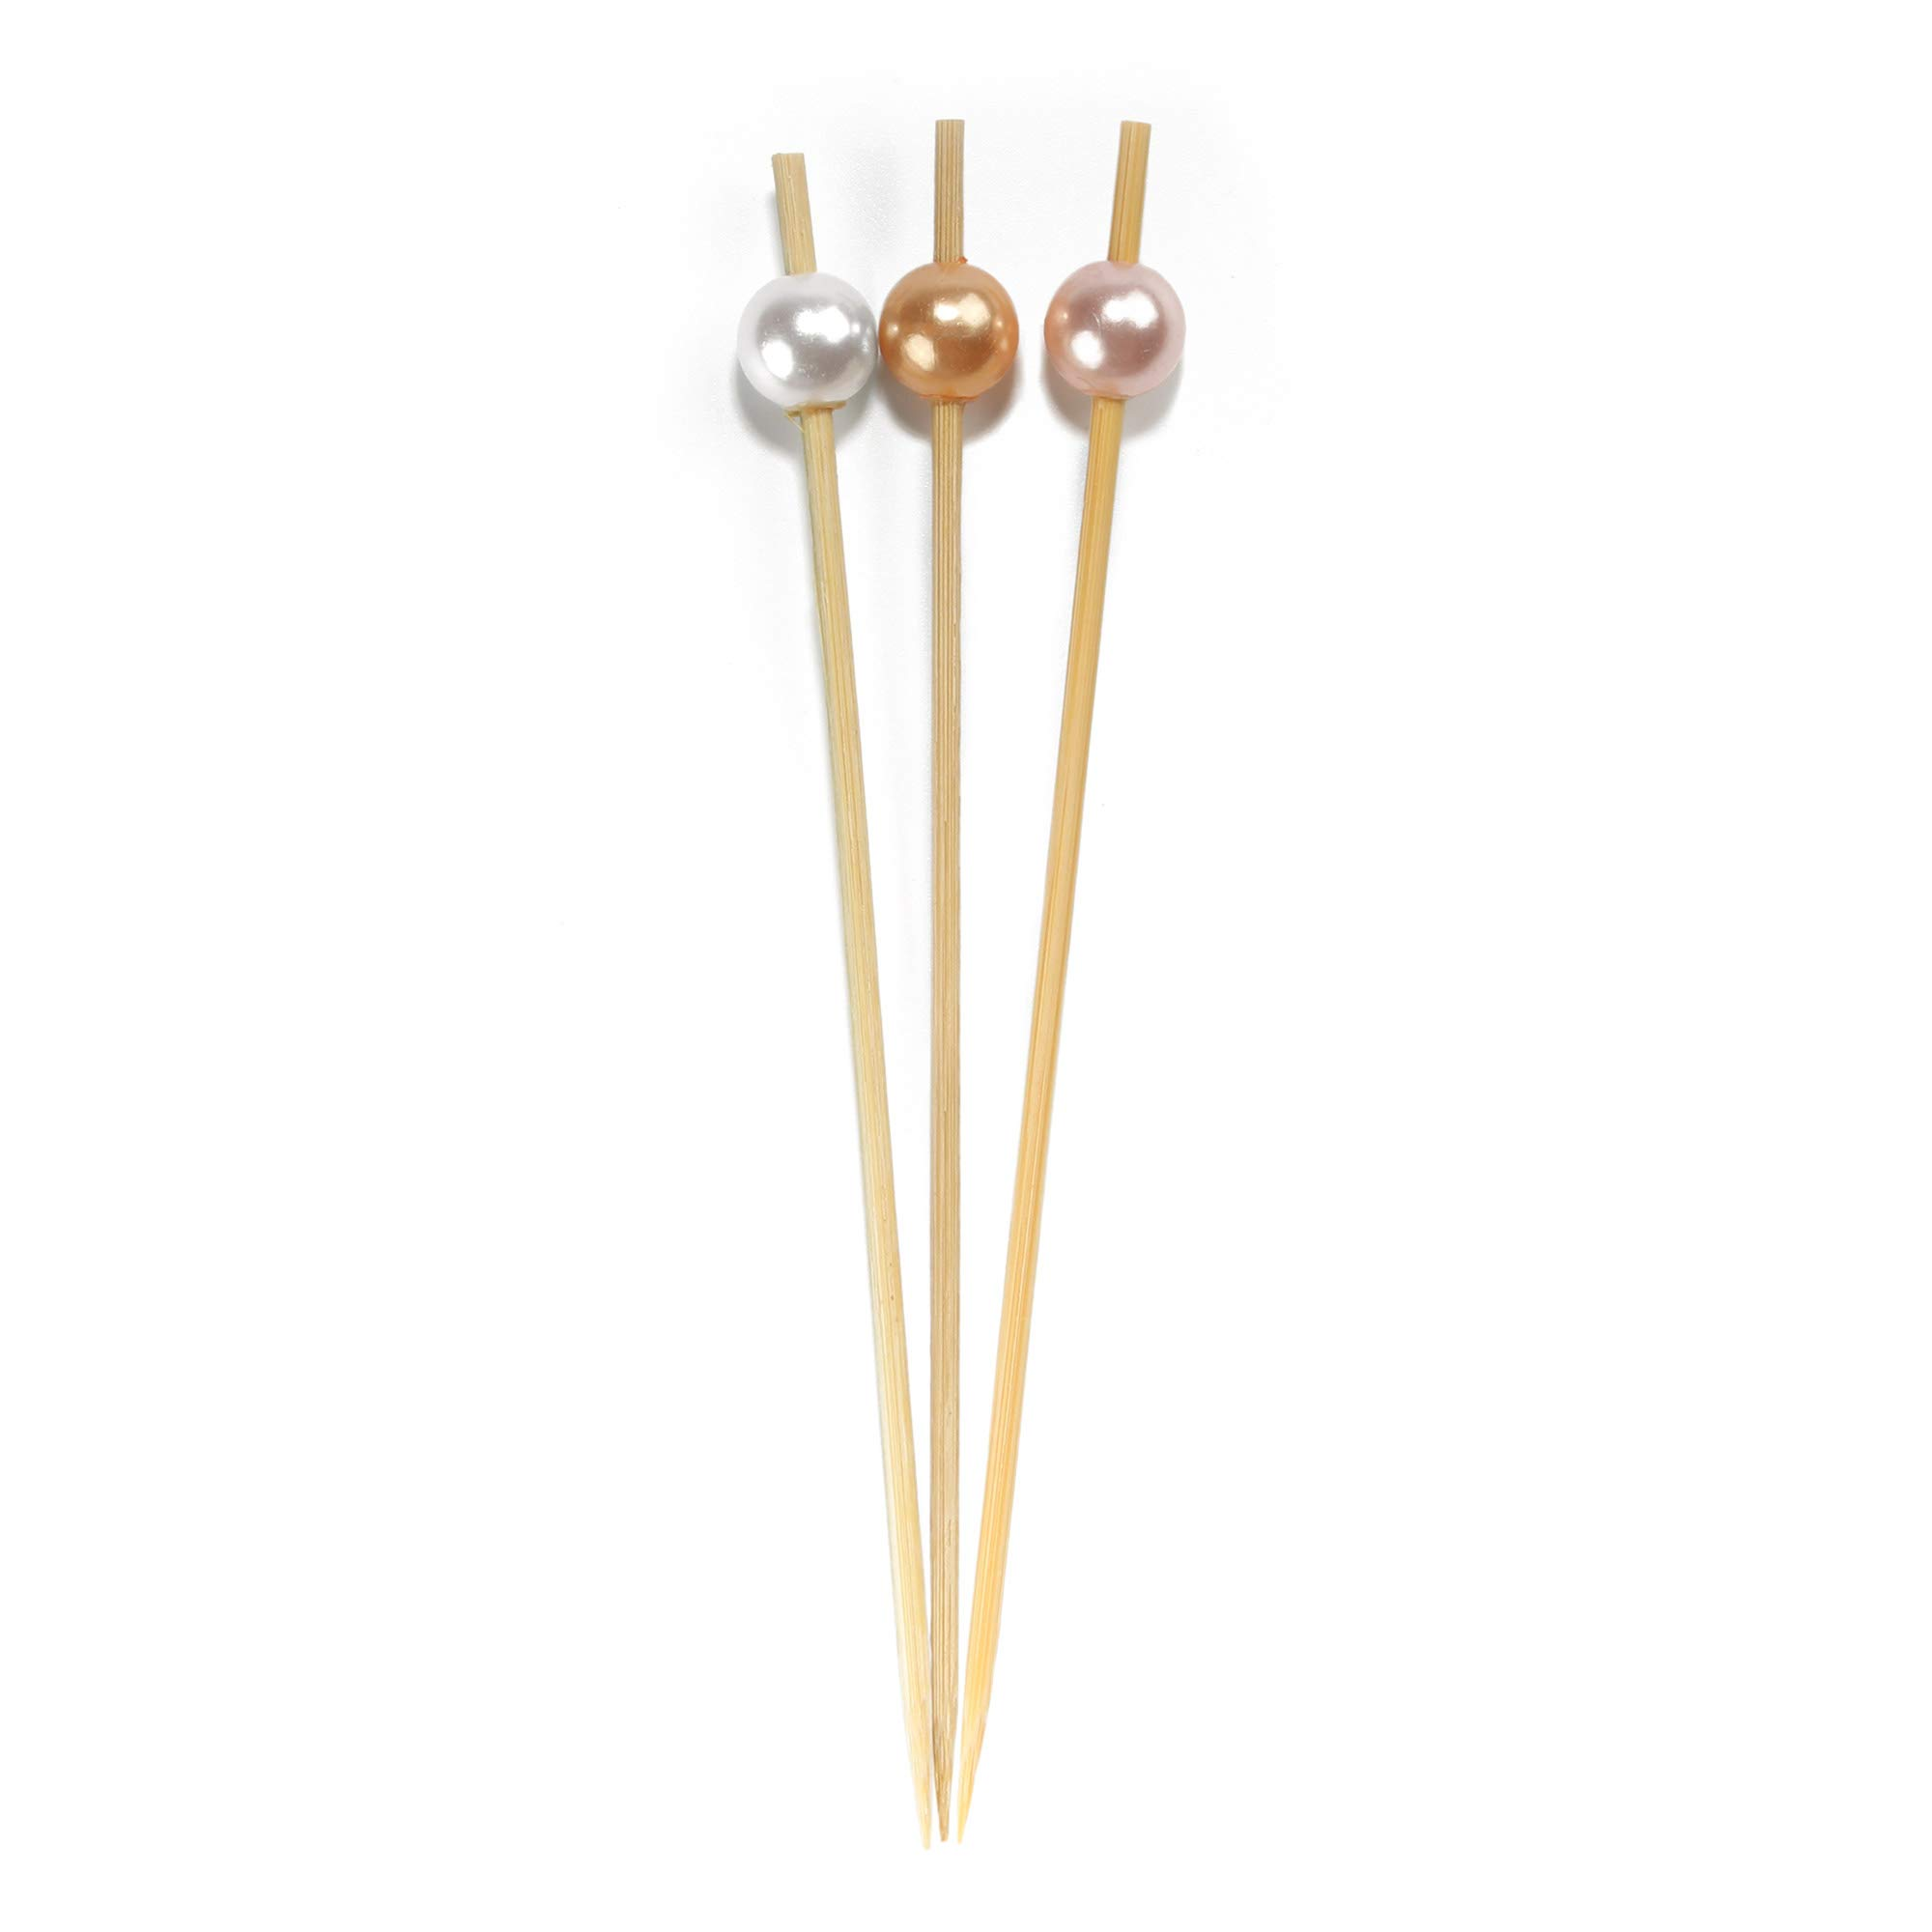 BambooMN 5.9'' Decorative Pearl End Cocktail Fruit Sandwich Picks Skewers for Catered Events, Holiday's, Restaurants or Buffets Party Supplies - 300pcs, Assort 96 (Champagne, Pink, White)